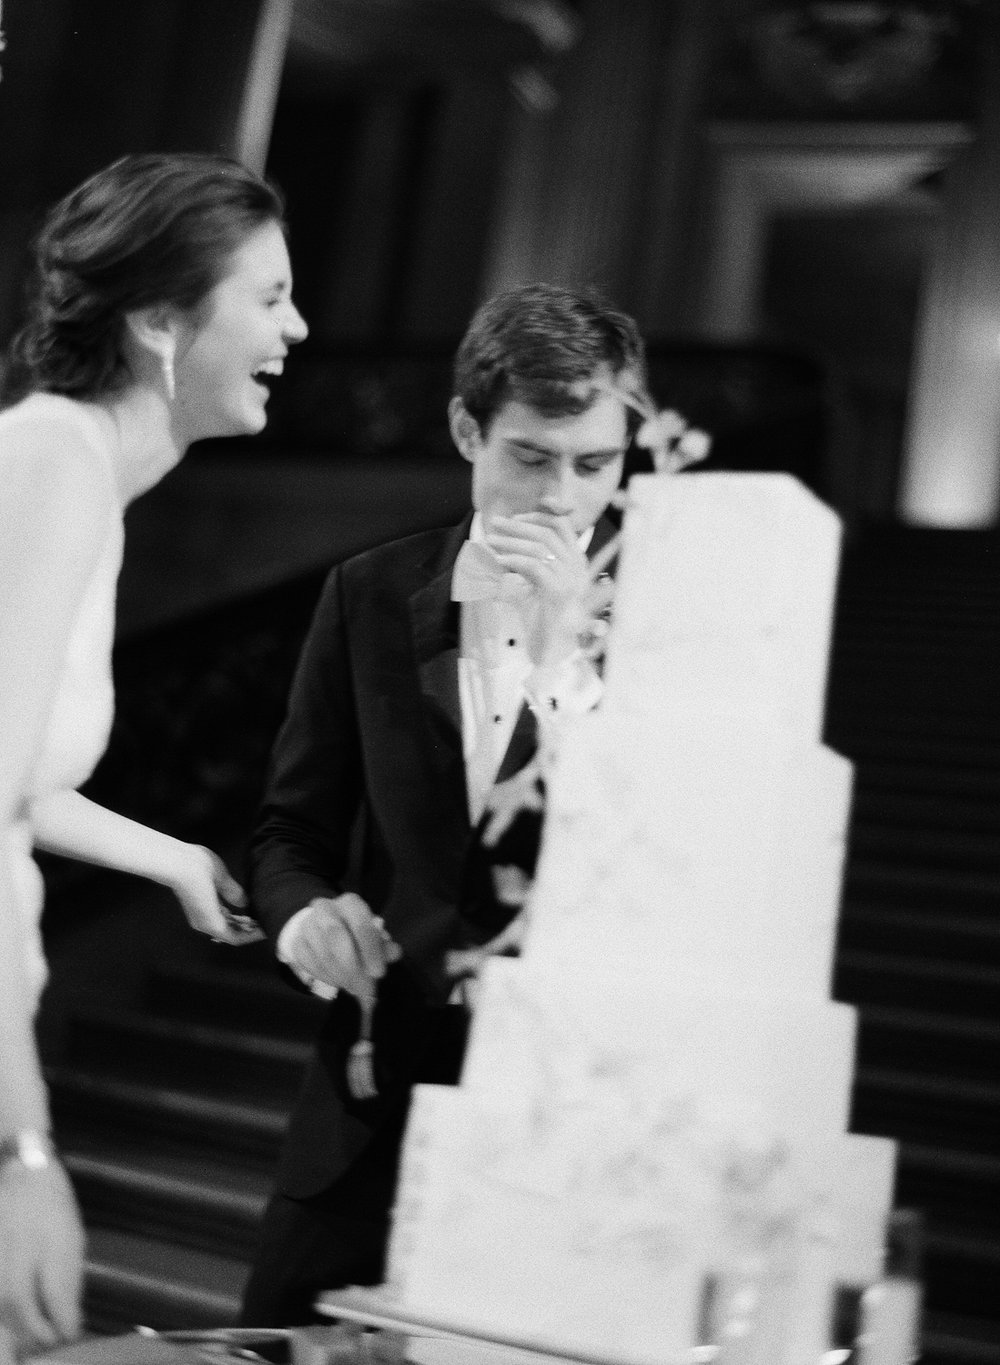 The couple shares a laugh during cake cutting; Sylvie Gil Photography